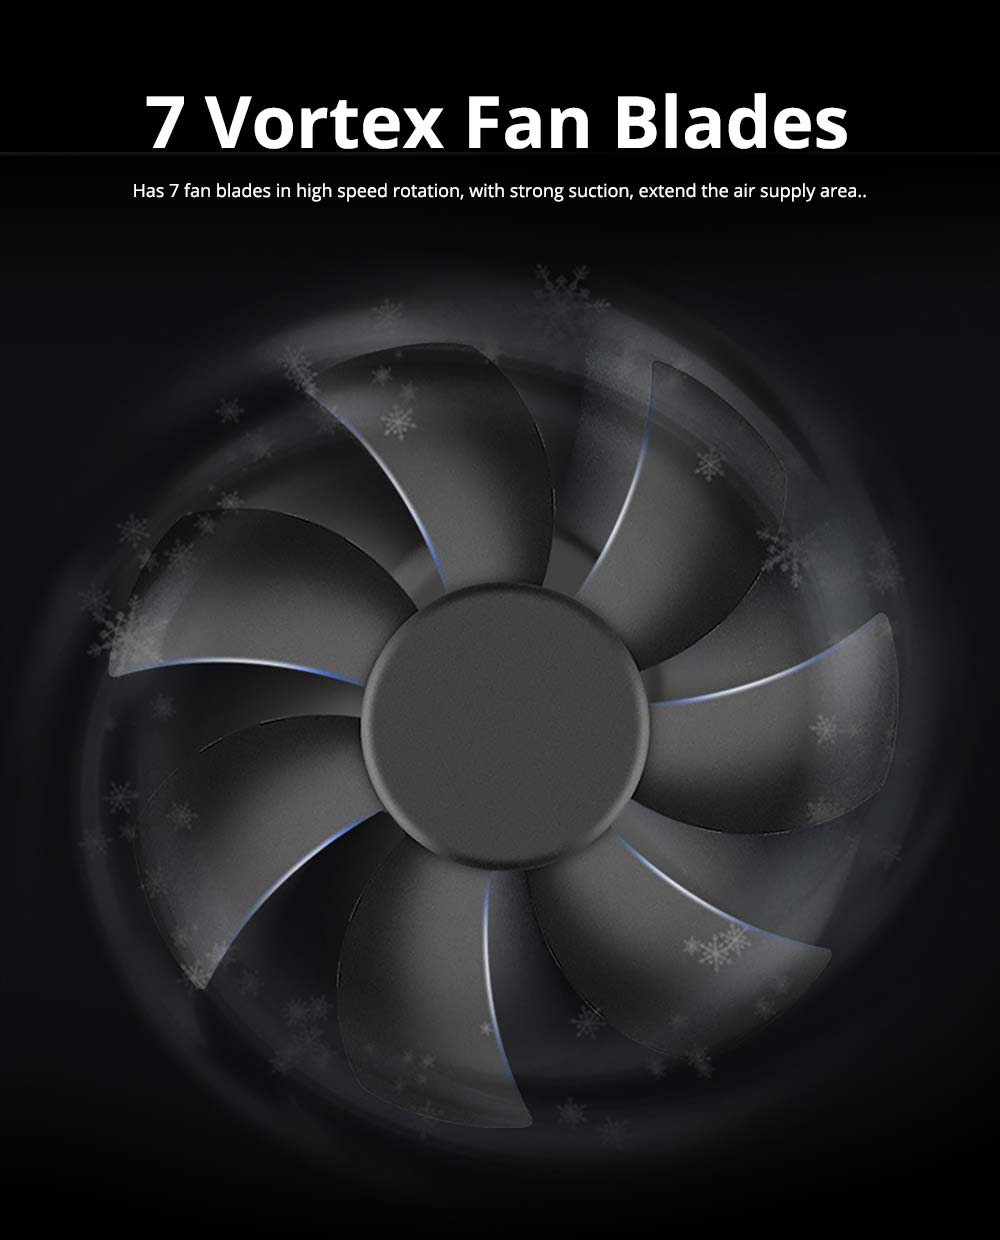 7 Vortex Fan Blades